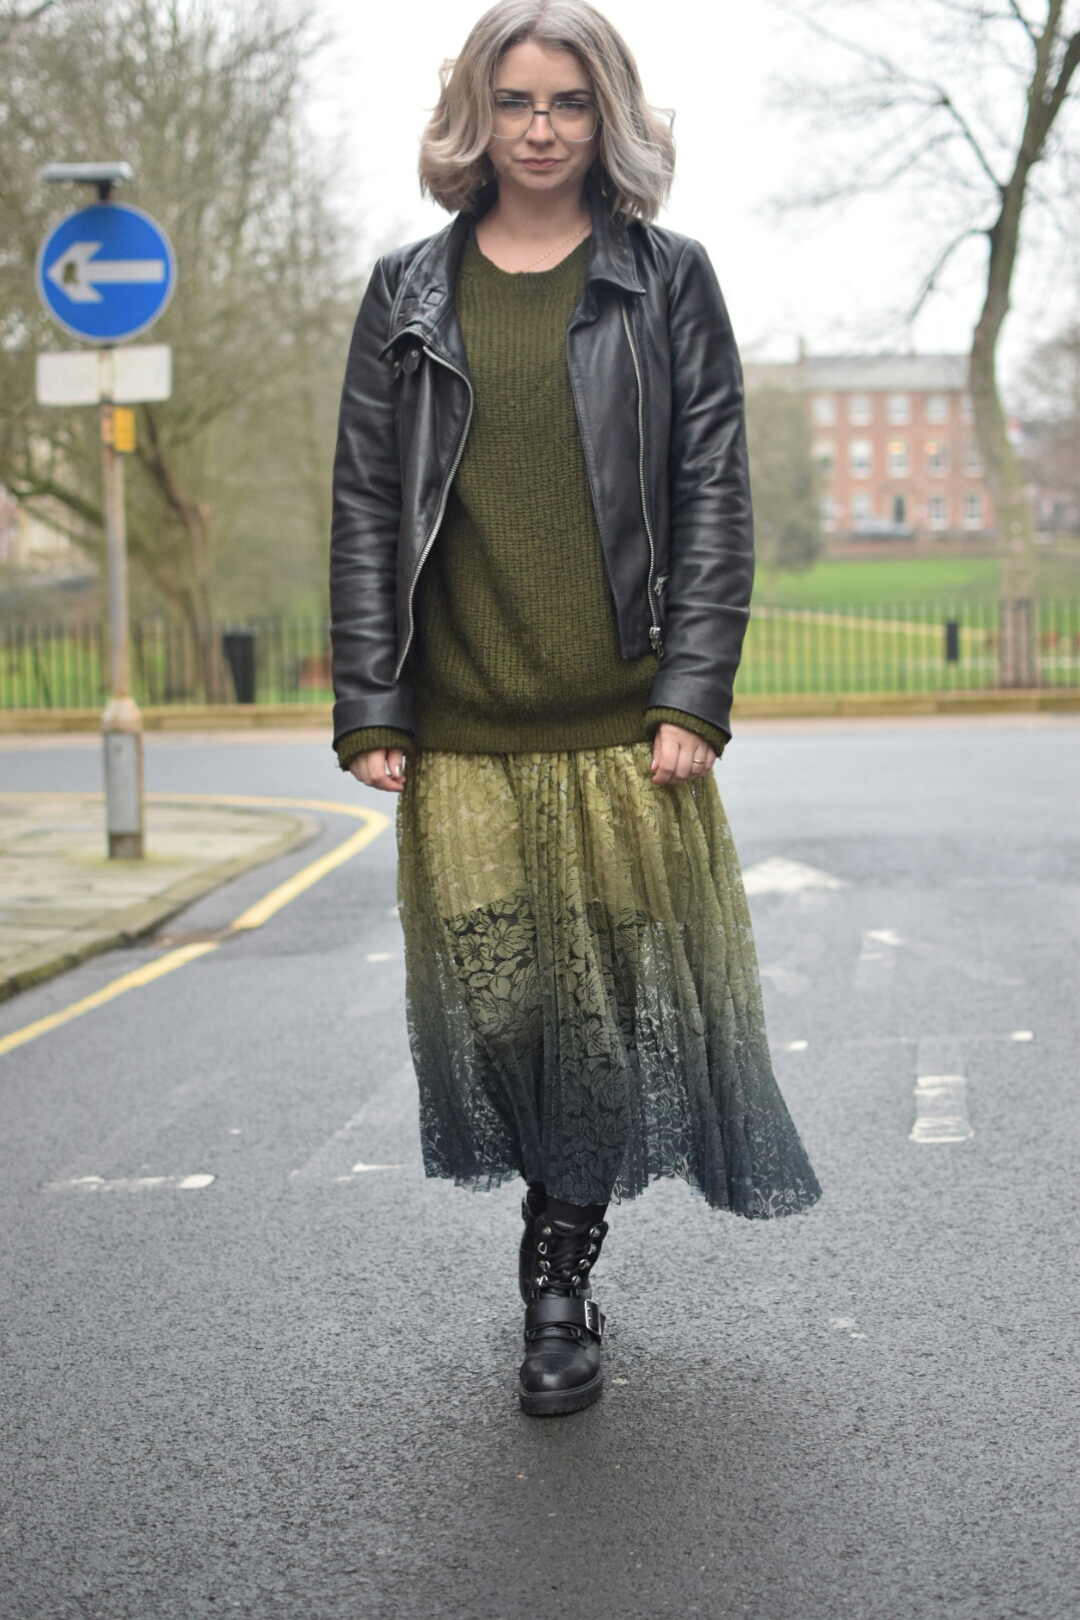 Zara Tie dye accordion lace skirt, Topshop Khaki Jumper, All Saints Bales Leather Jacket and New Look Biker Boots.